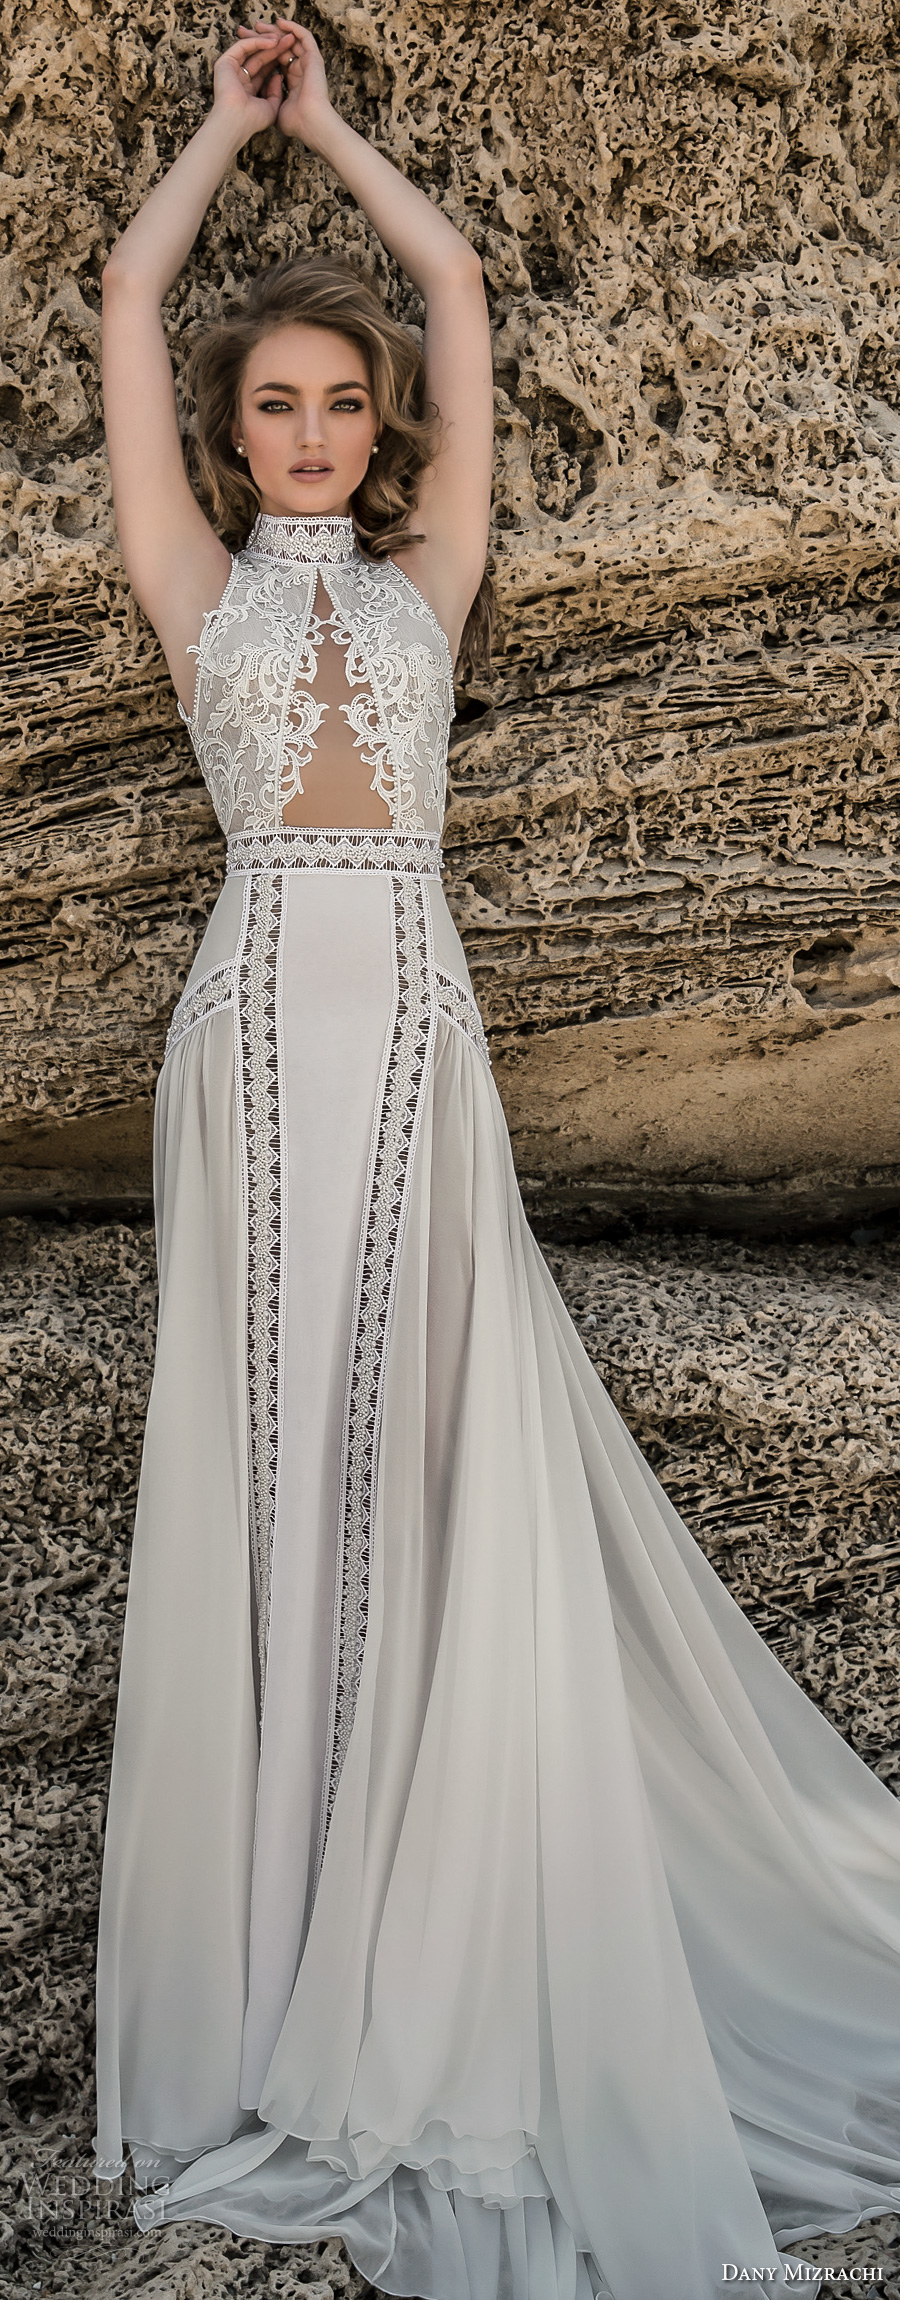 dany mizrachi 2018 bridal sleeveless high neck heavily embellished keyhole bodice flowy skirt bohemian sheath wedding dress keyhole back chapel train (5) mv